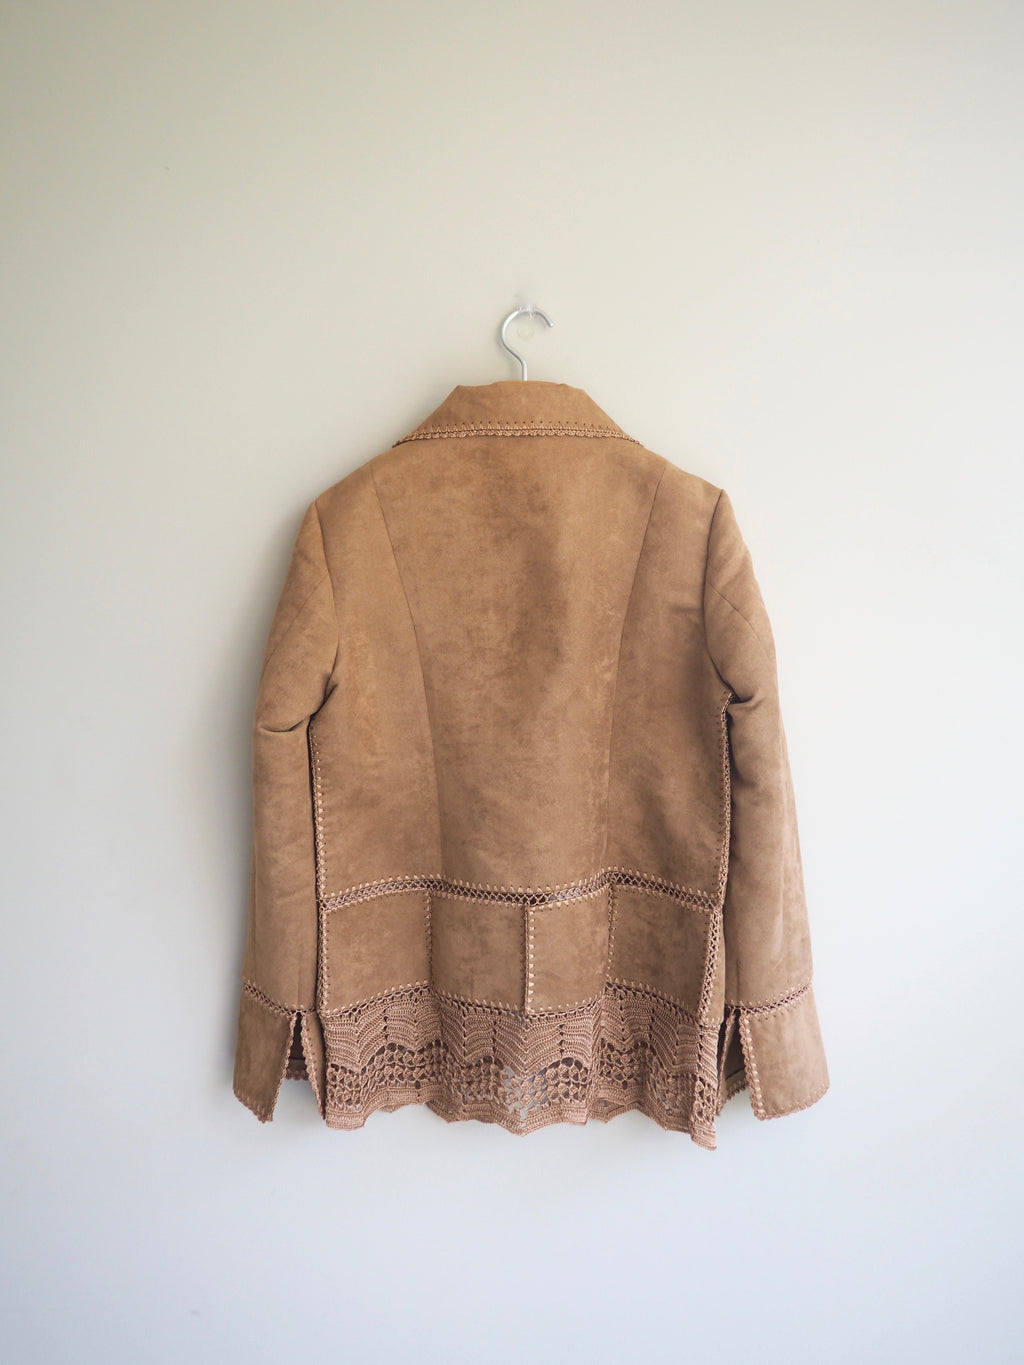 Crochet Trim Jacket